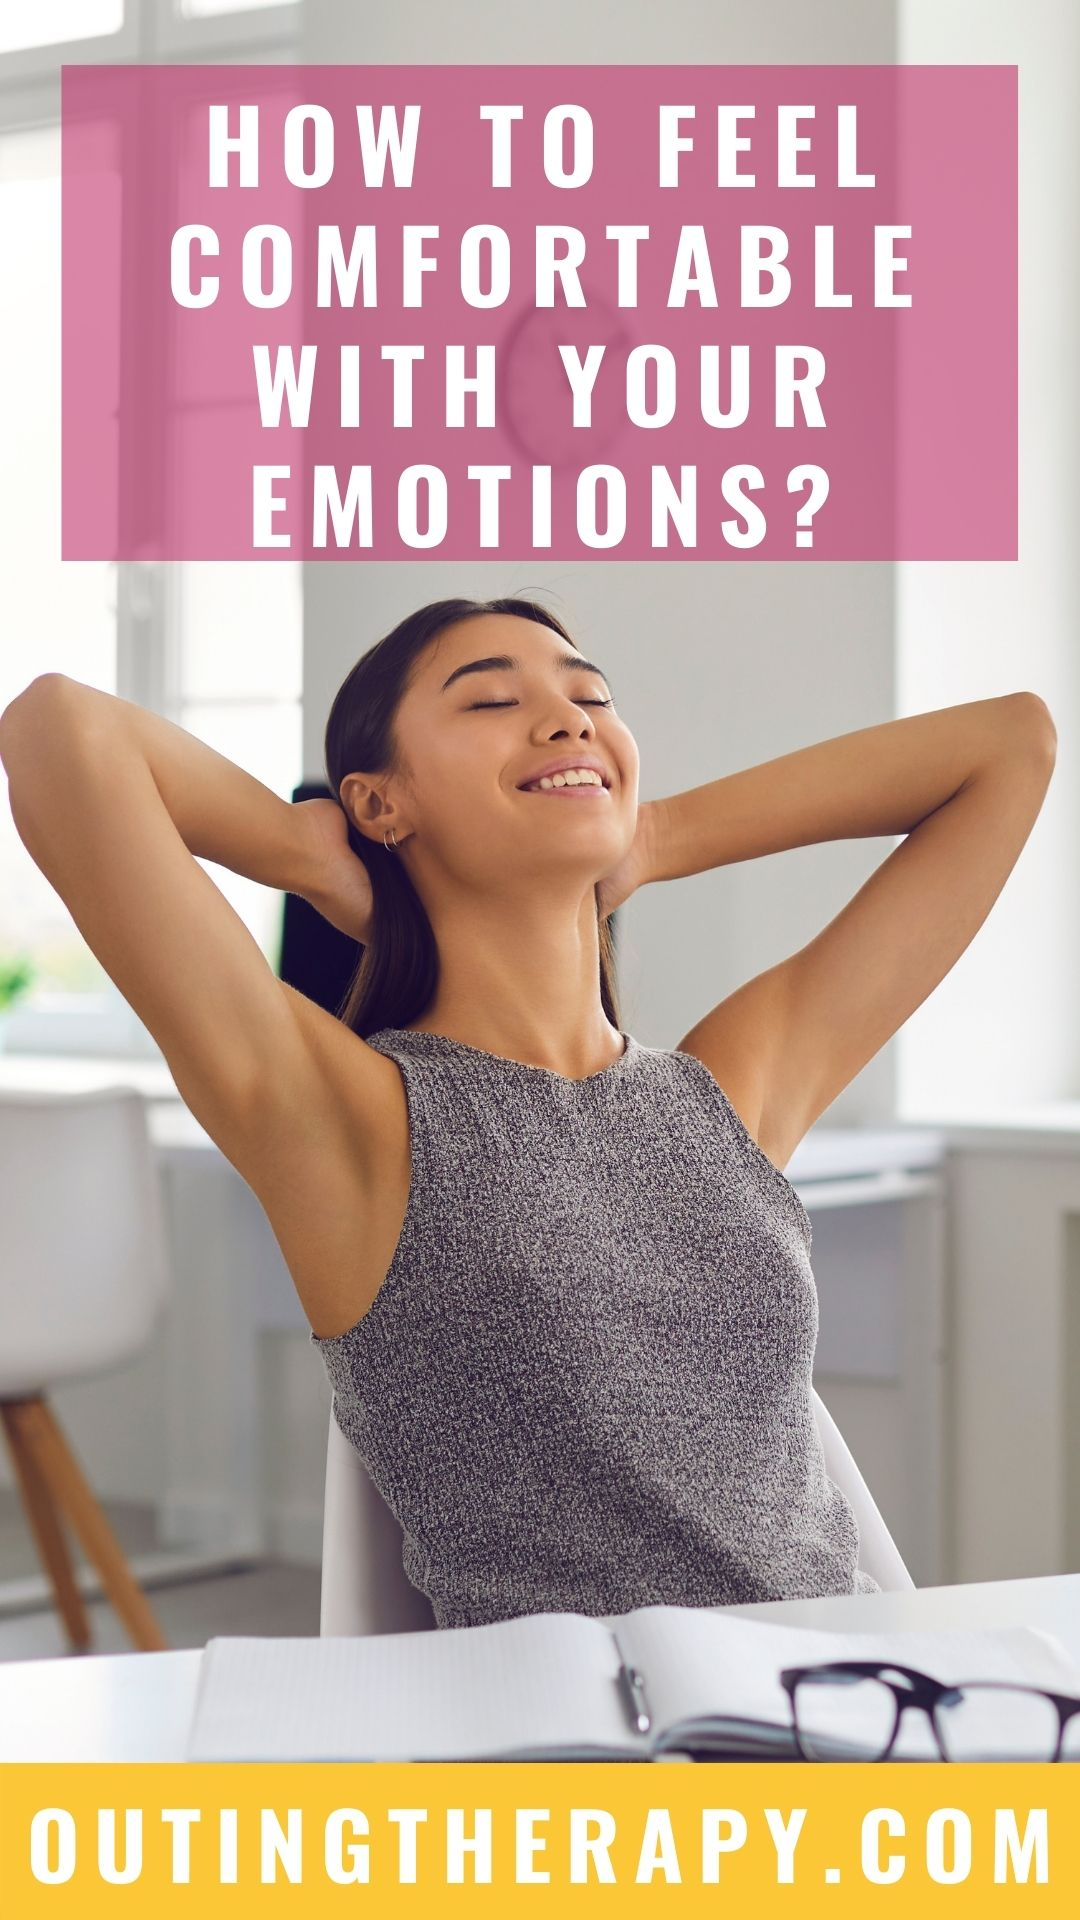 HOW TO FEEL COMFORTABLE WITH EMOTIONS TO LIVE A HAPPIER LIFE?